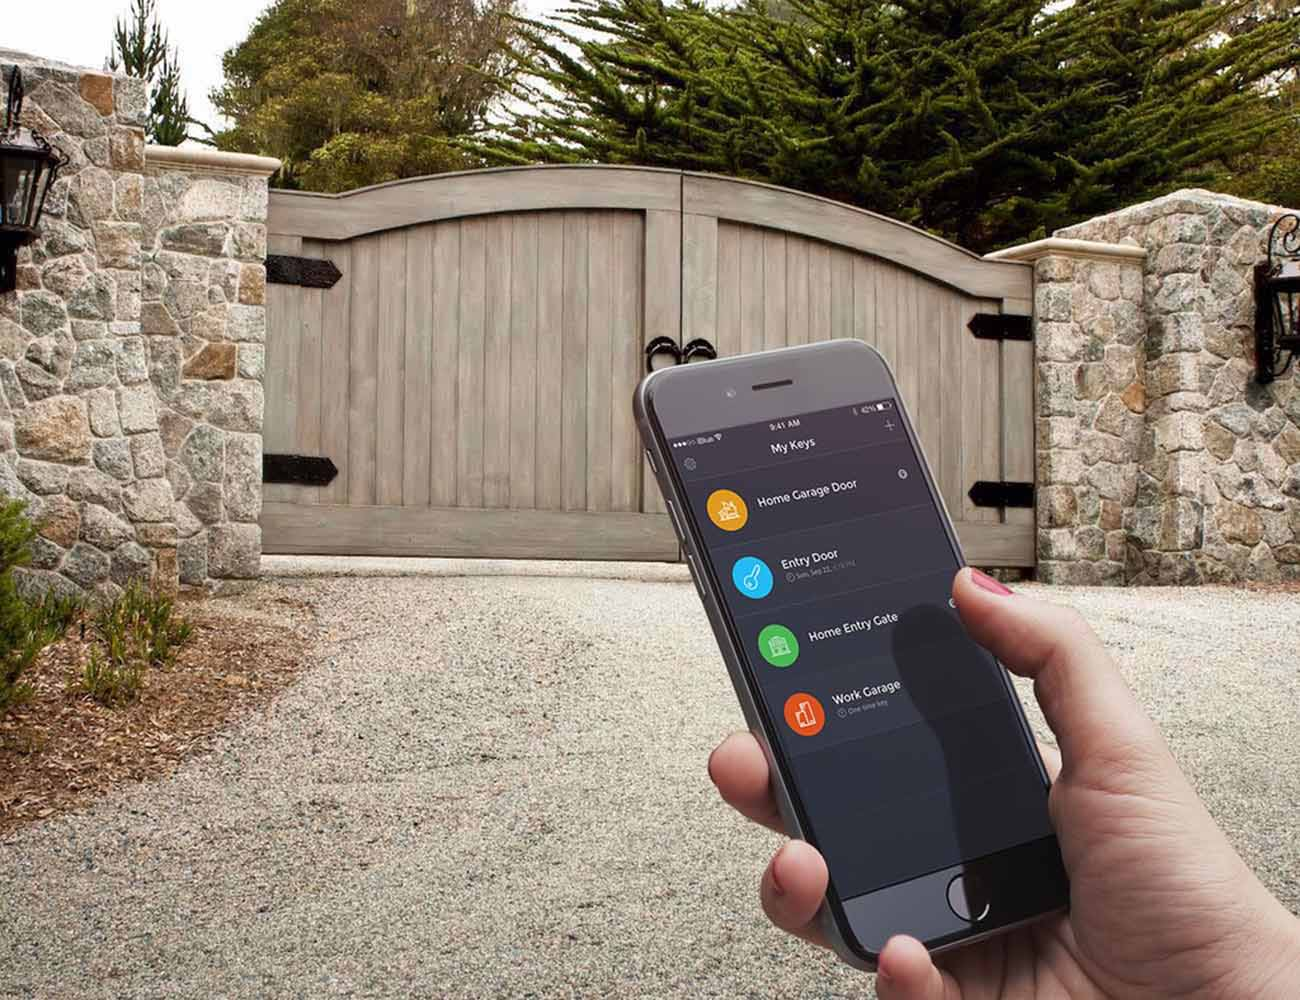 iBlue Smart Gate Garage Opener